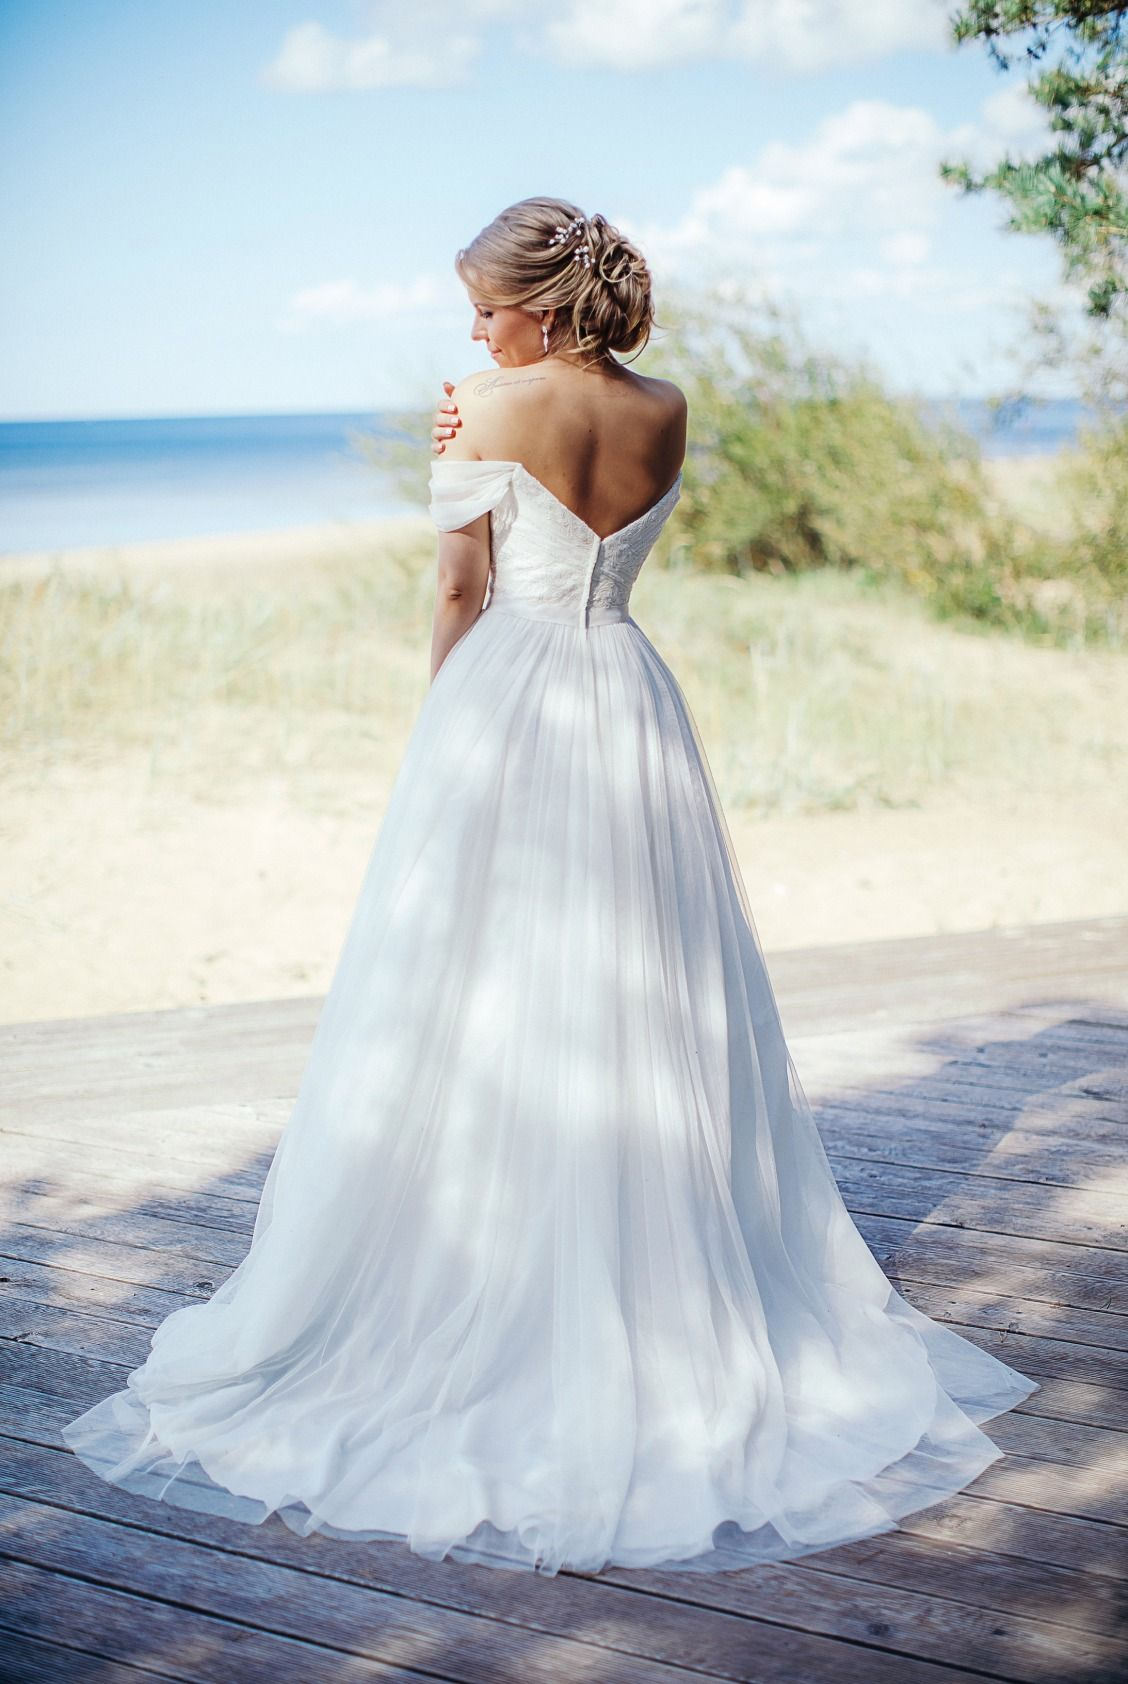 A ball gown is an unexpected choice for a beach wedding